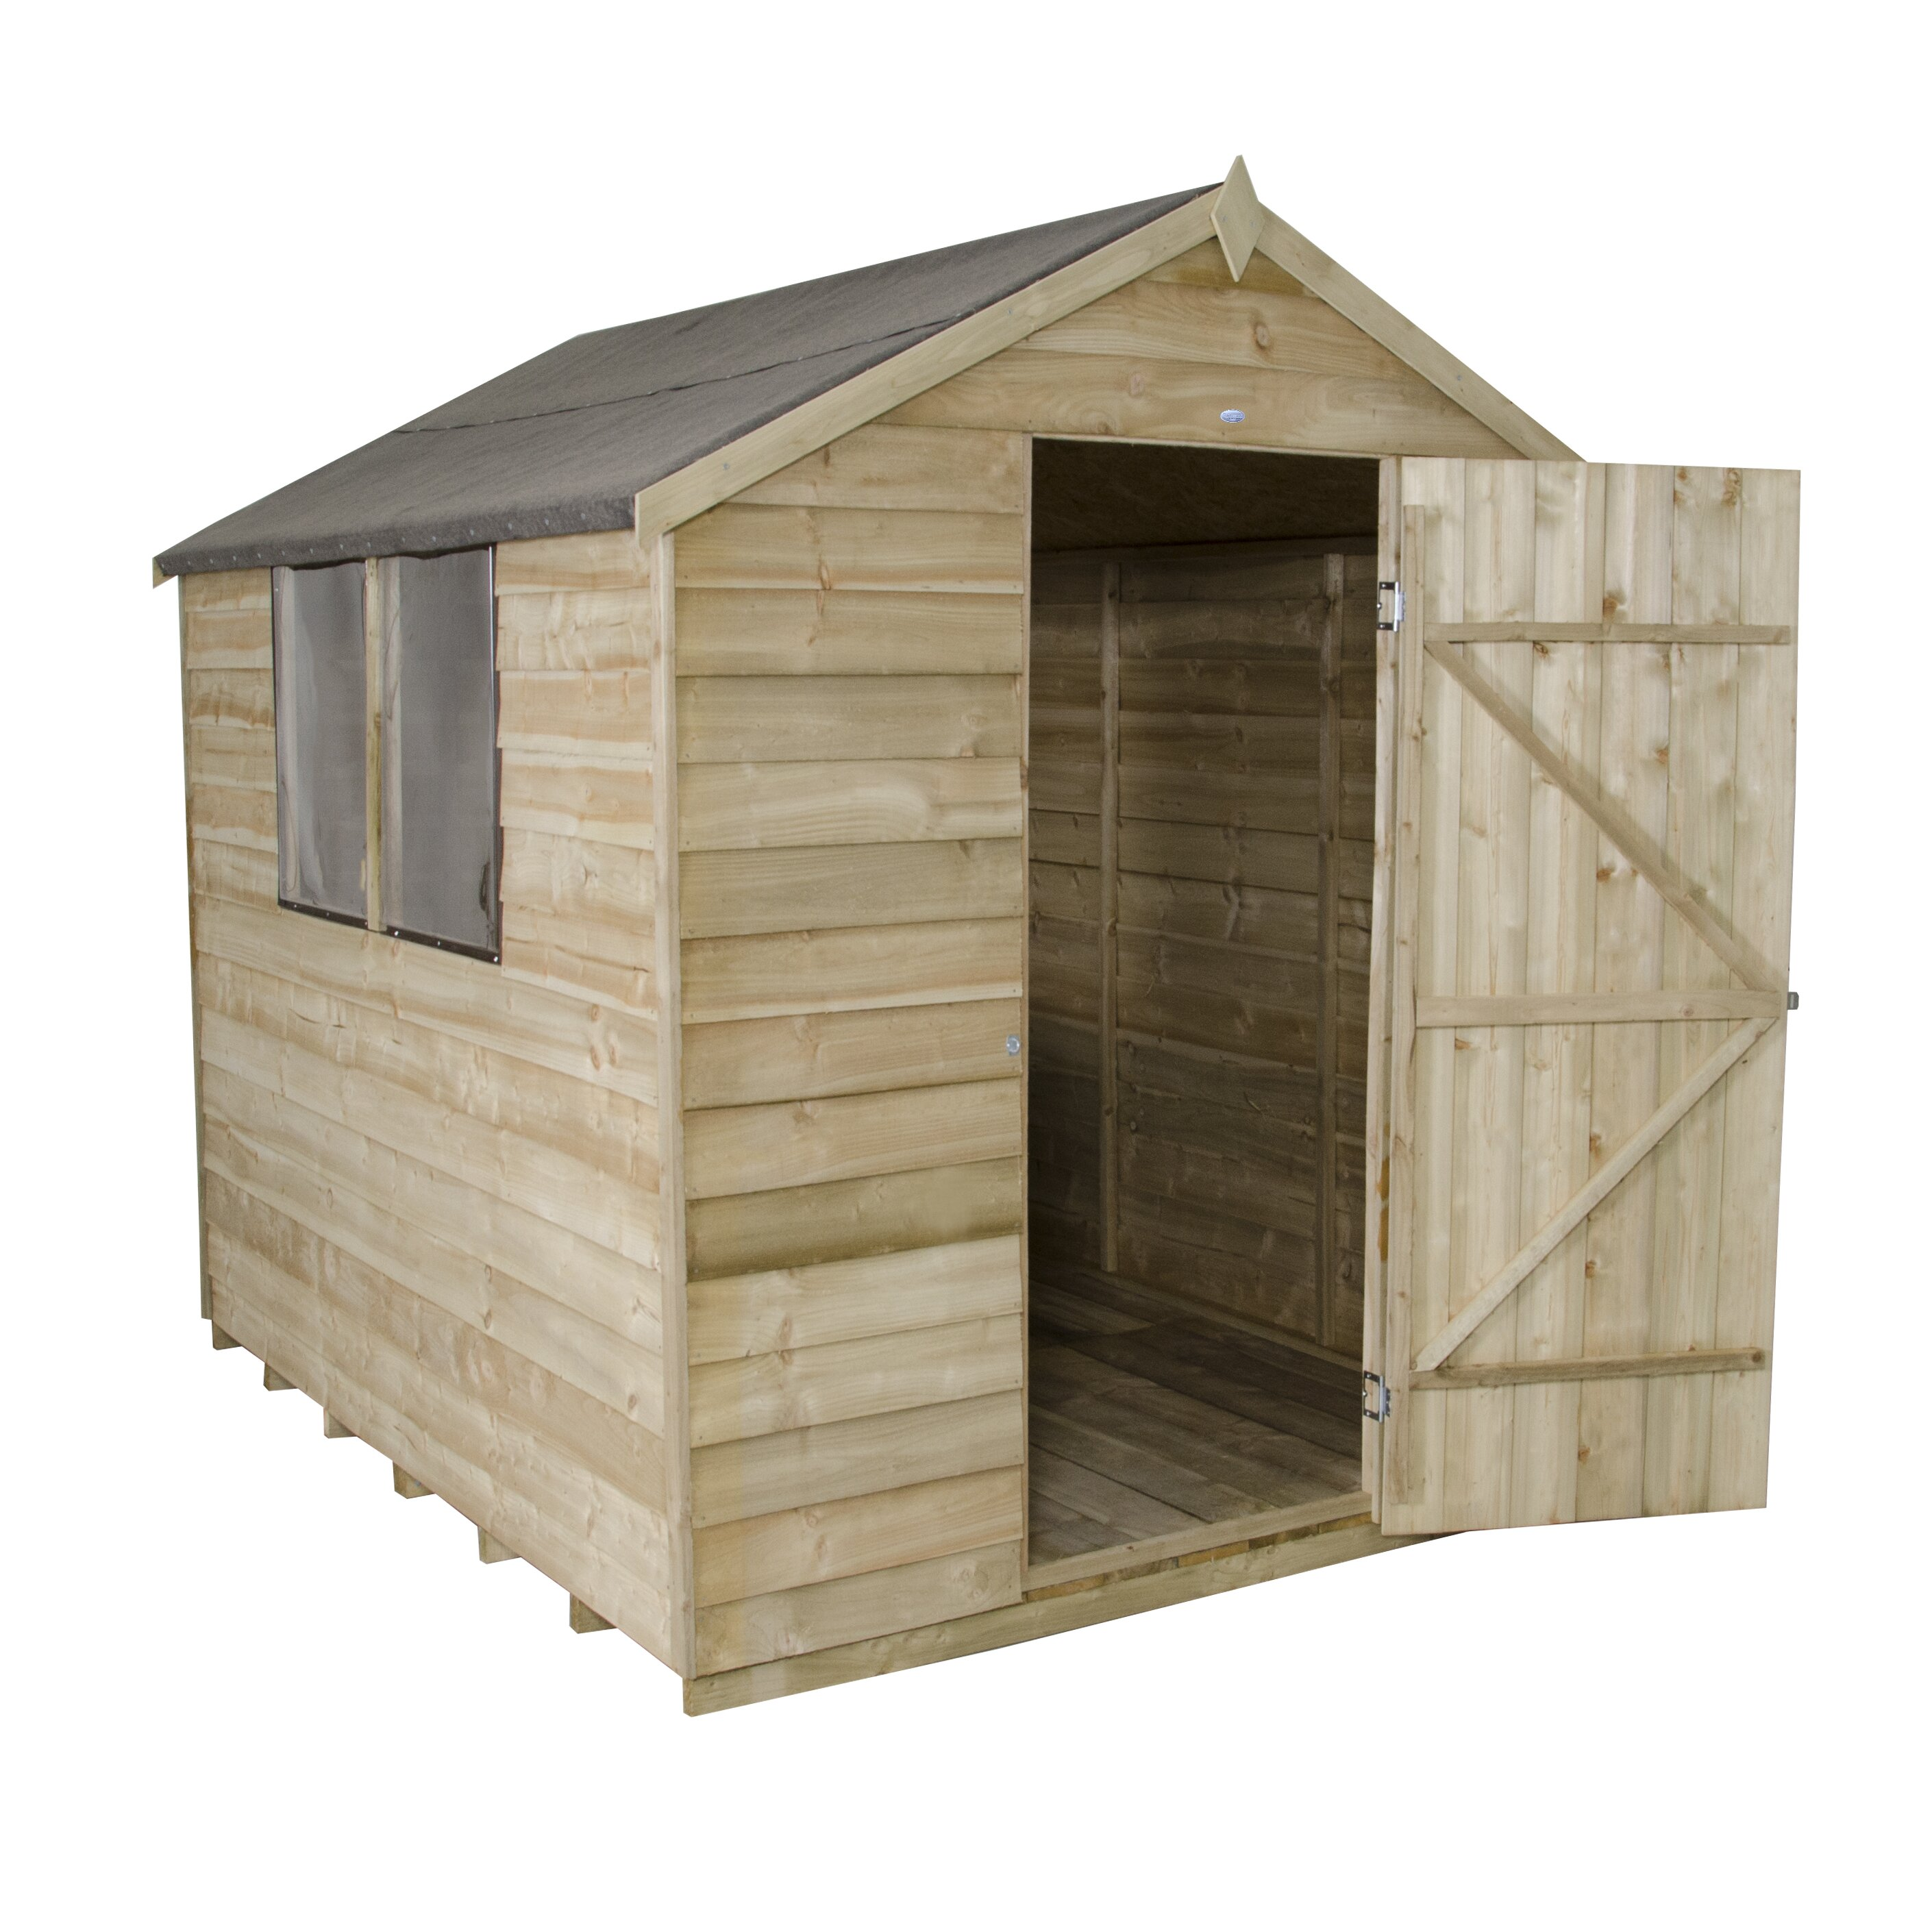 Forest garden 6 x 8 wooden storage shed wayfair uk for Garden and storage sheds